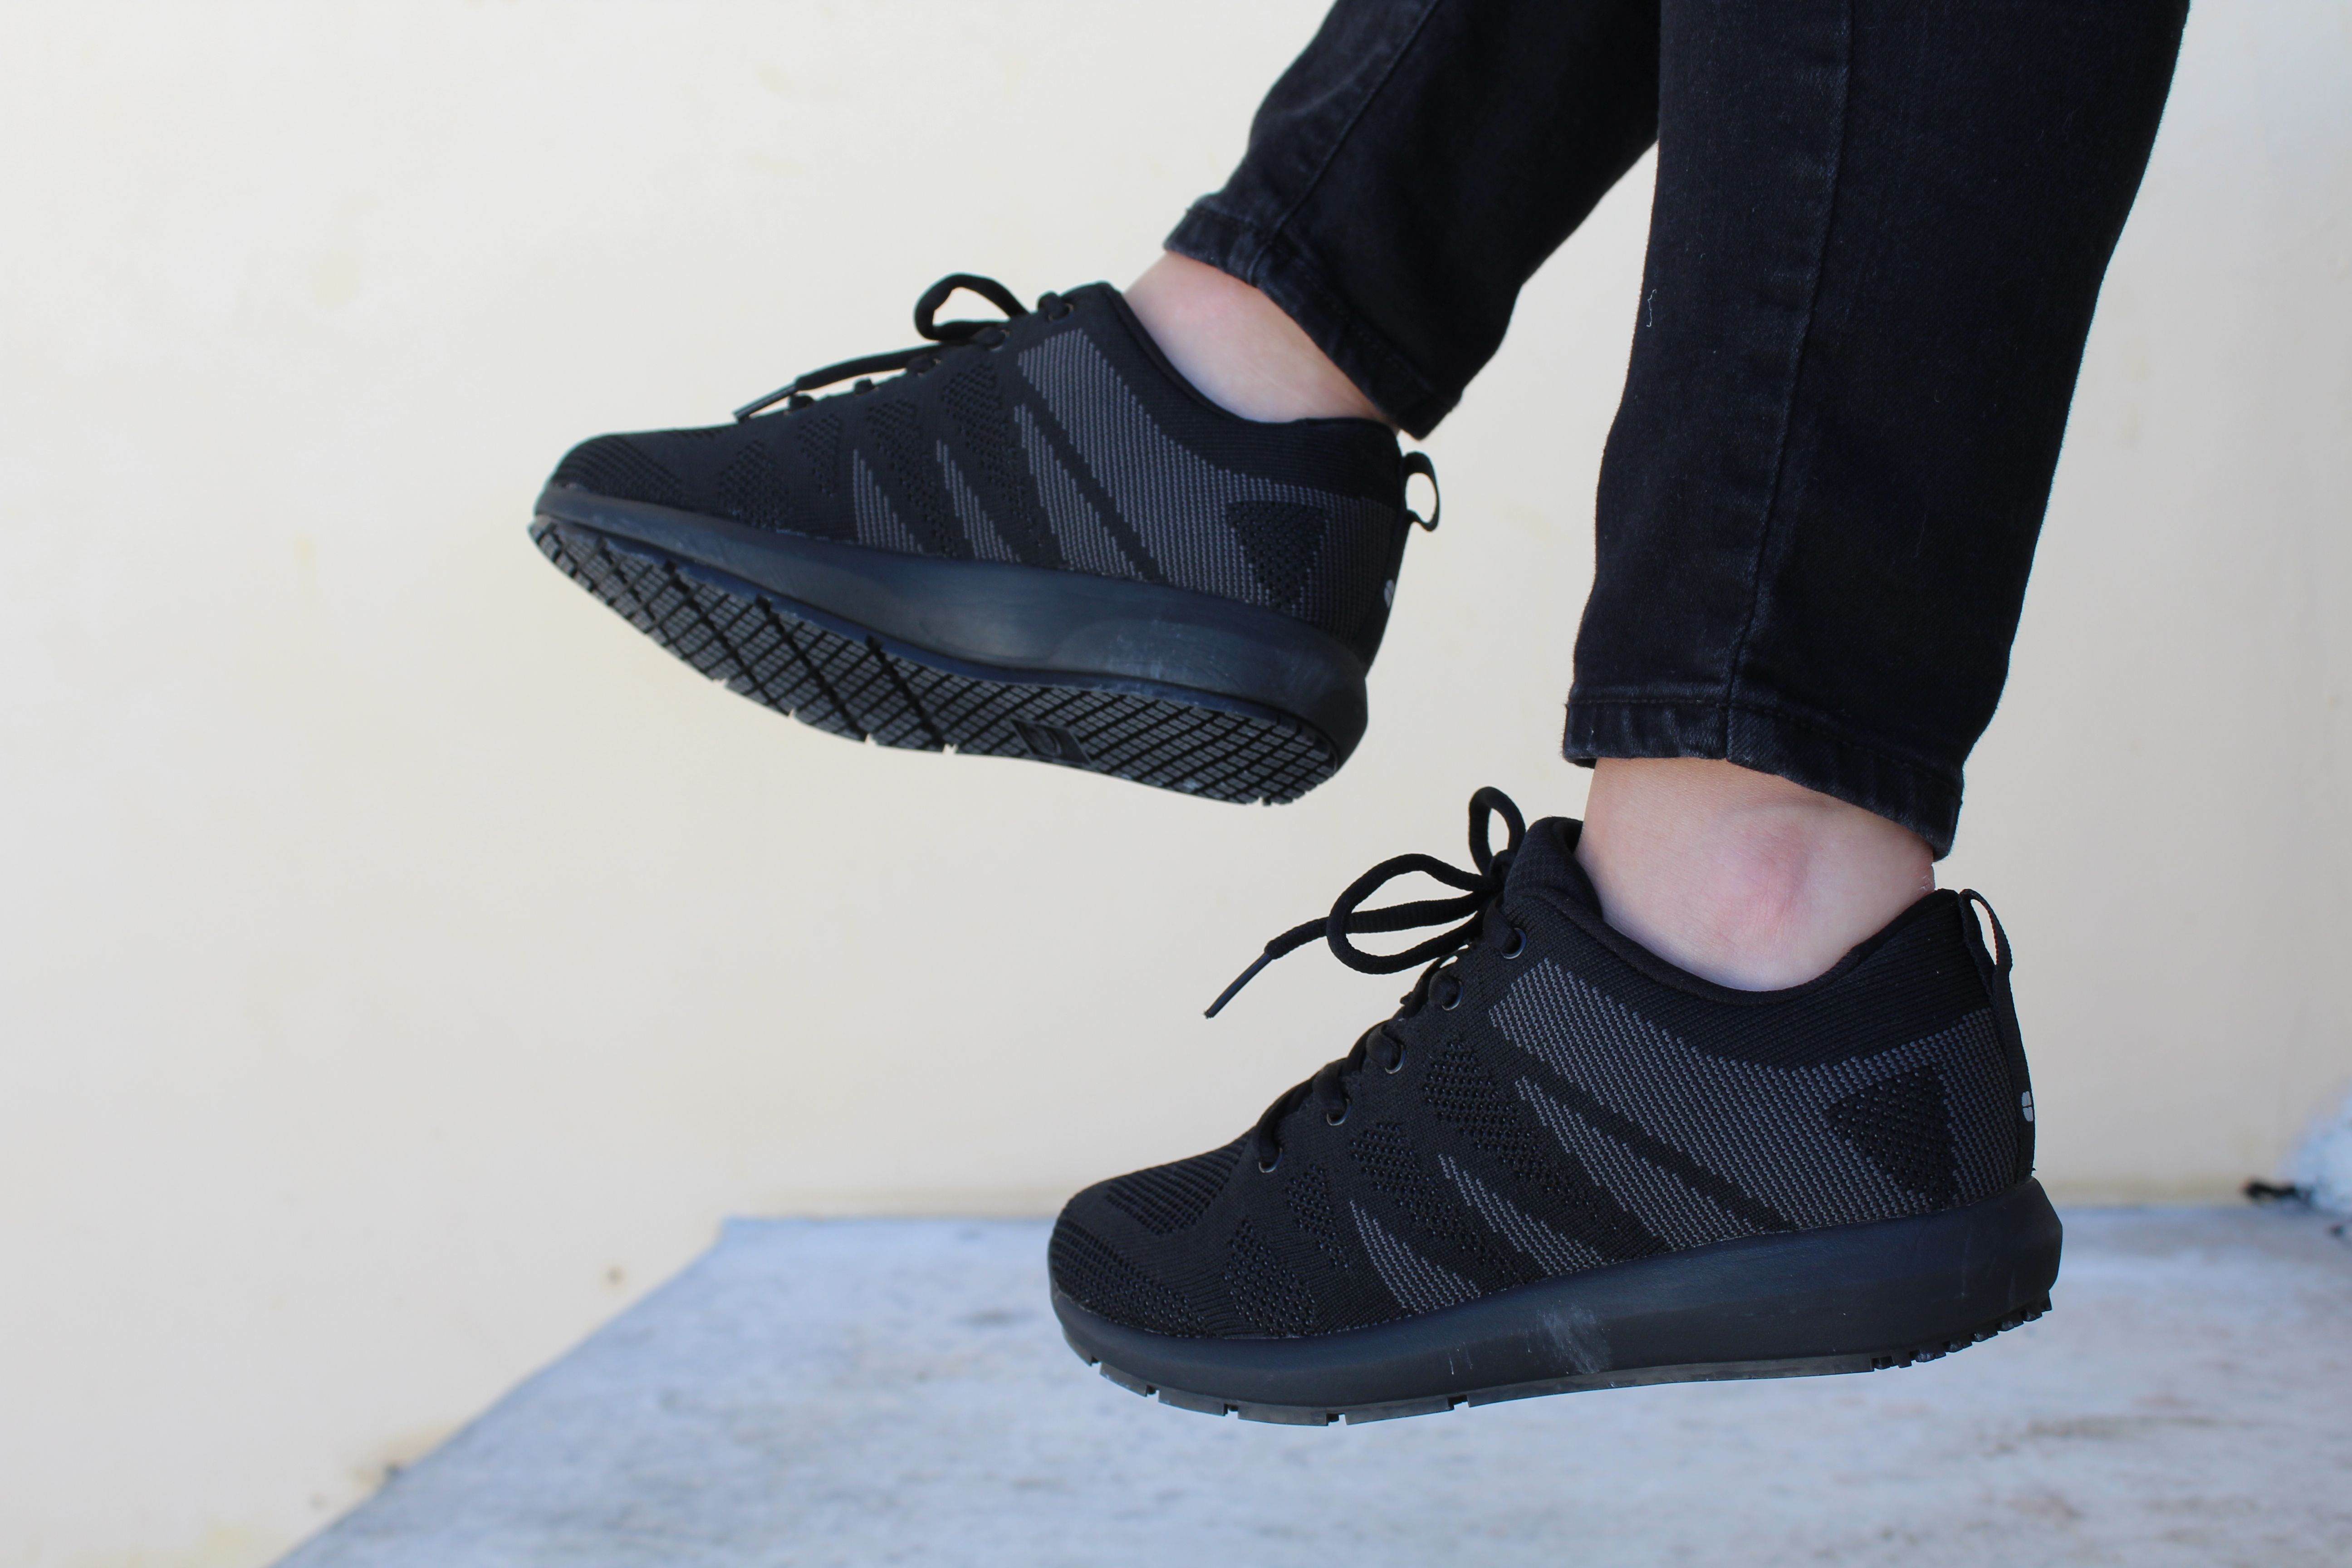 Buy - adidas shoes slip resistant - OFF